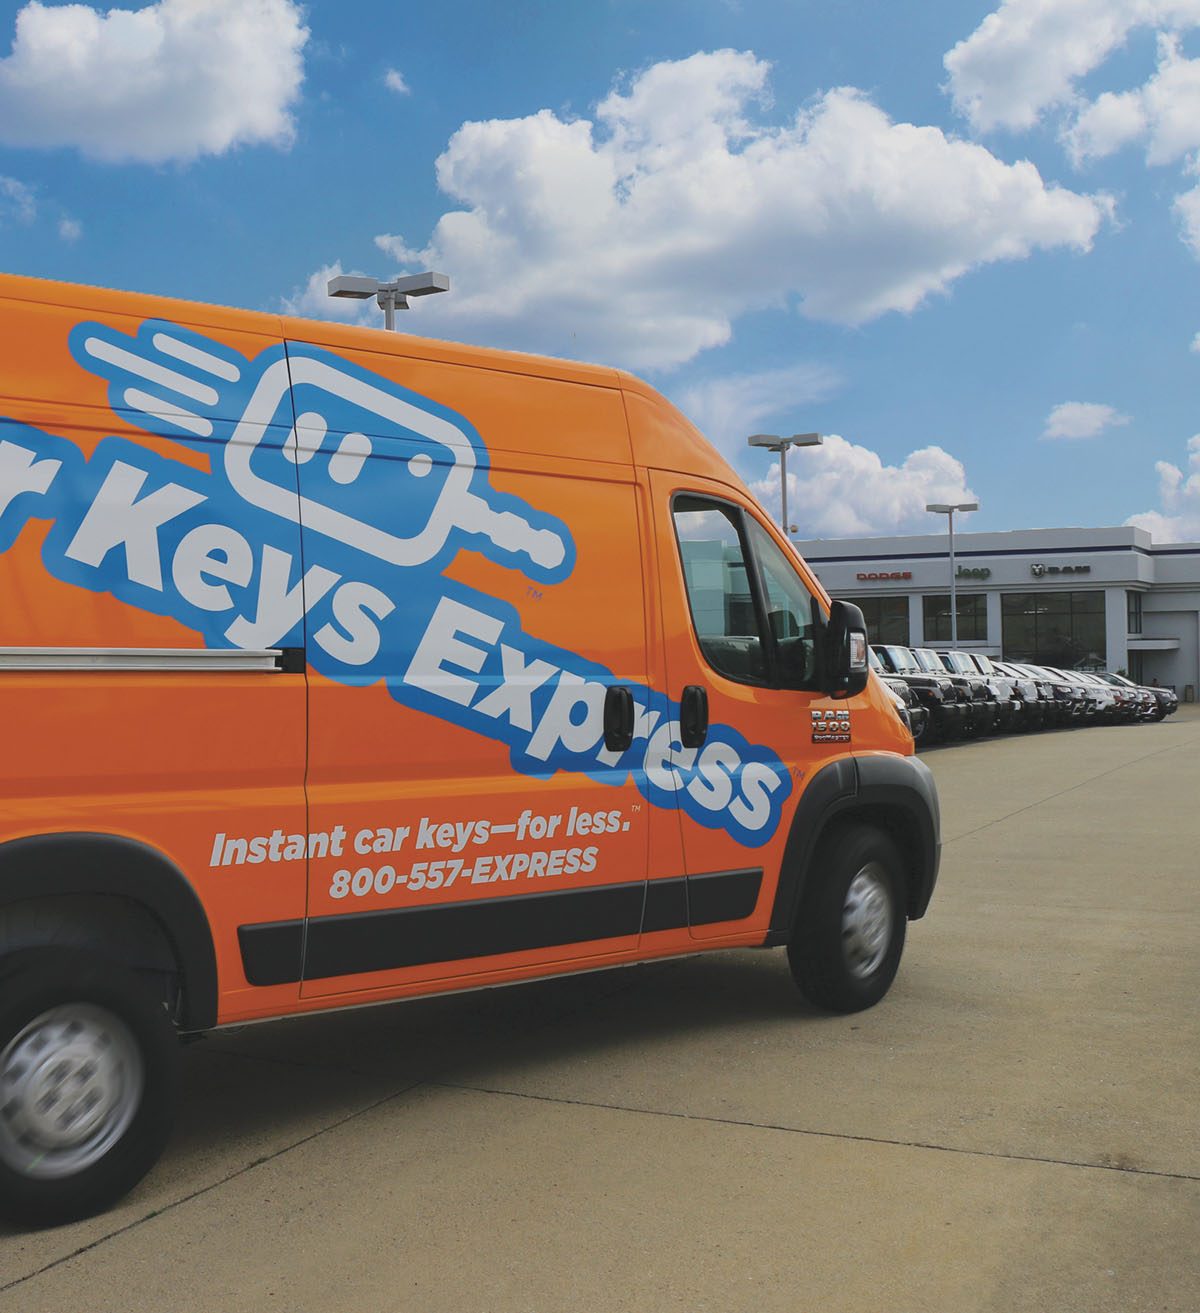 car keys express solves dealership key problems